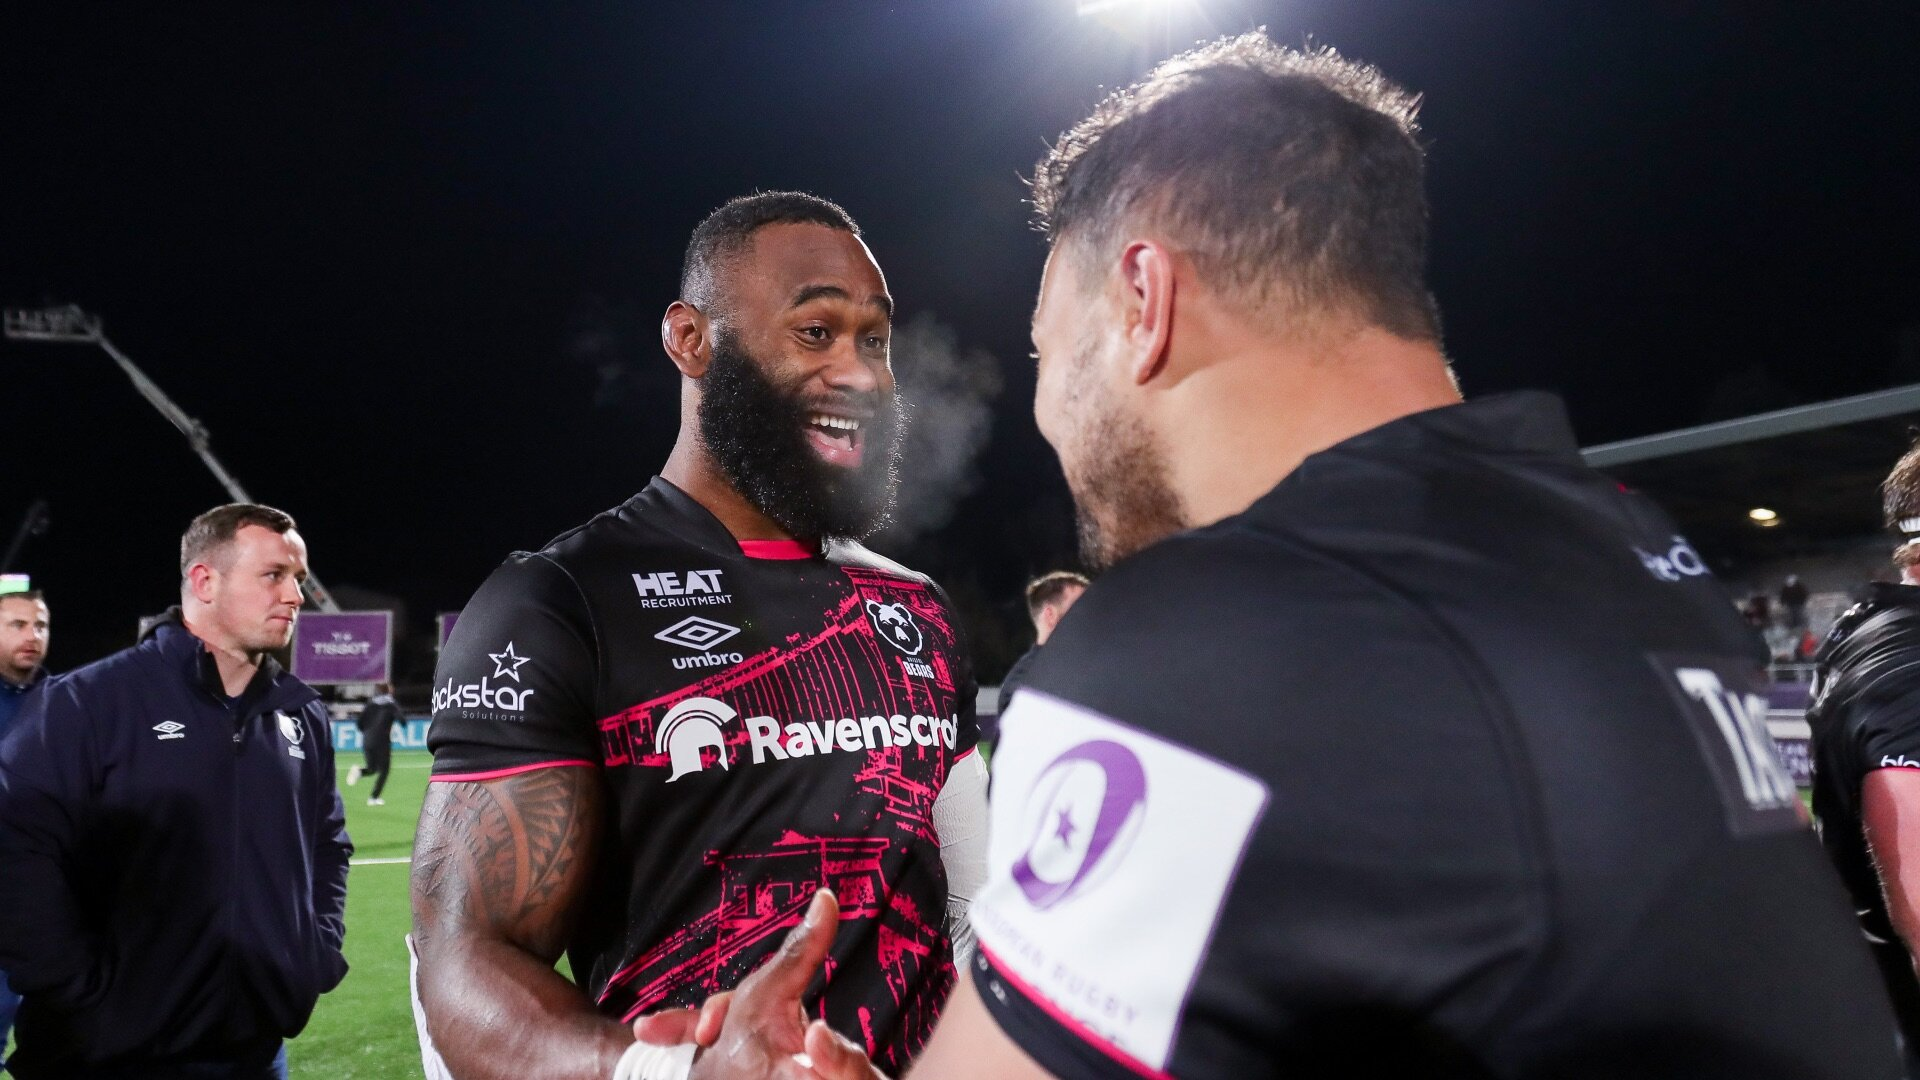 Nations Cup blow for Fiji as Semi Radradra ruled out until the end of November